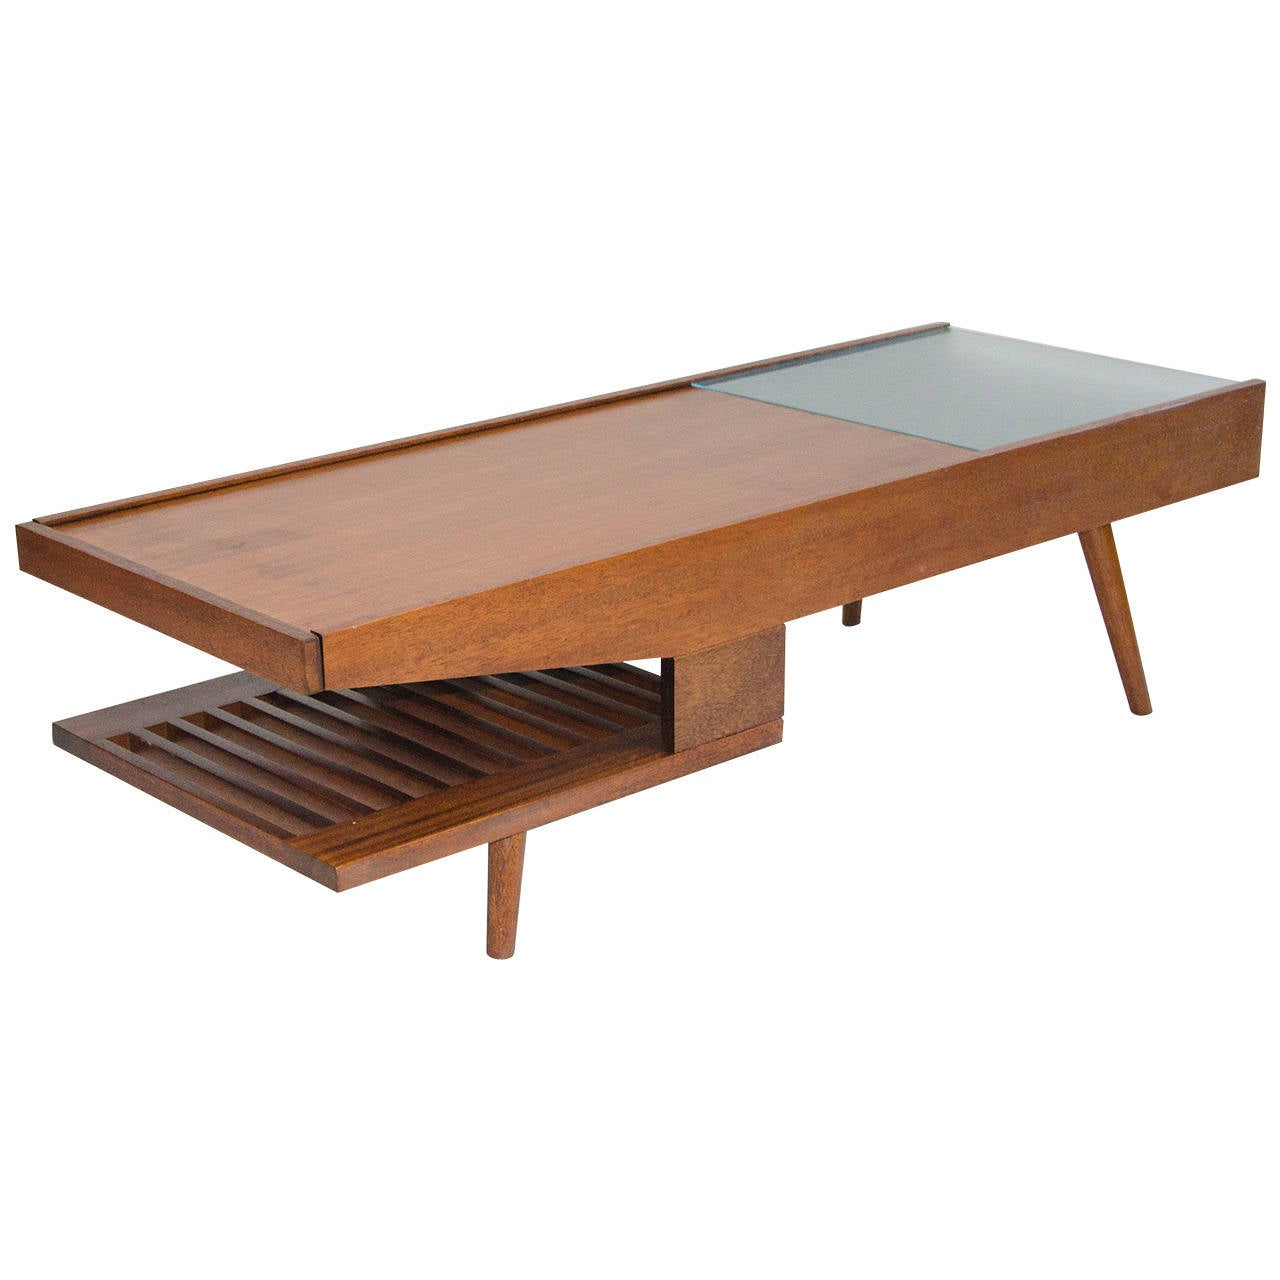 Mid Century Surfboard Coffee Table At 1stdibs: Mid-Century Coffee Table, John Keal For Brown Saltman At